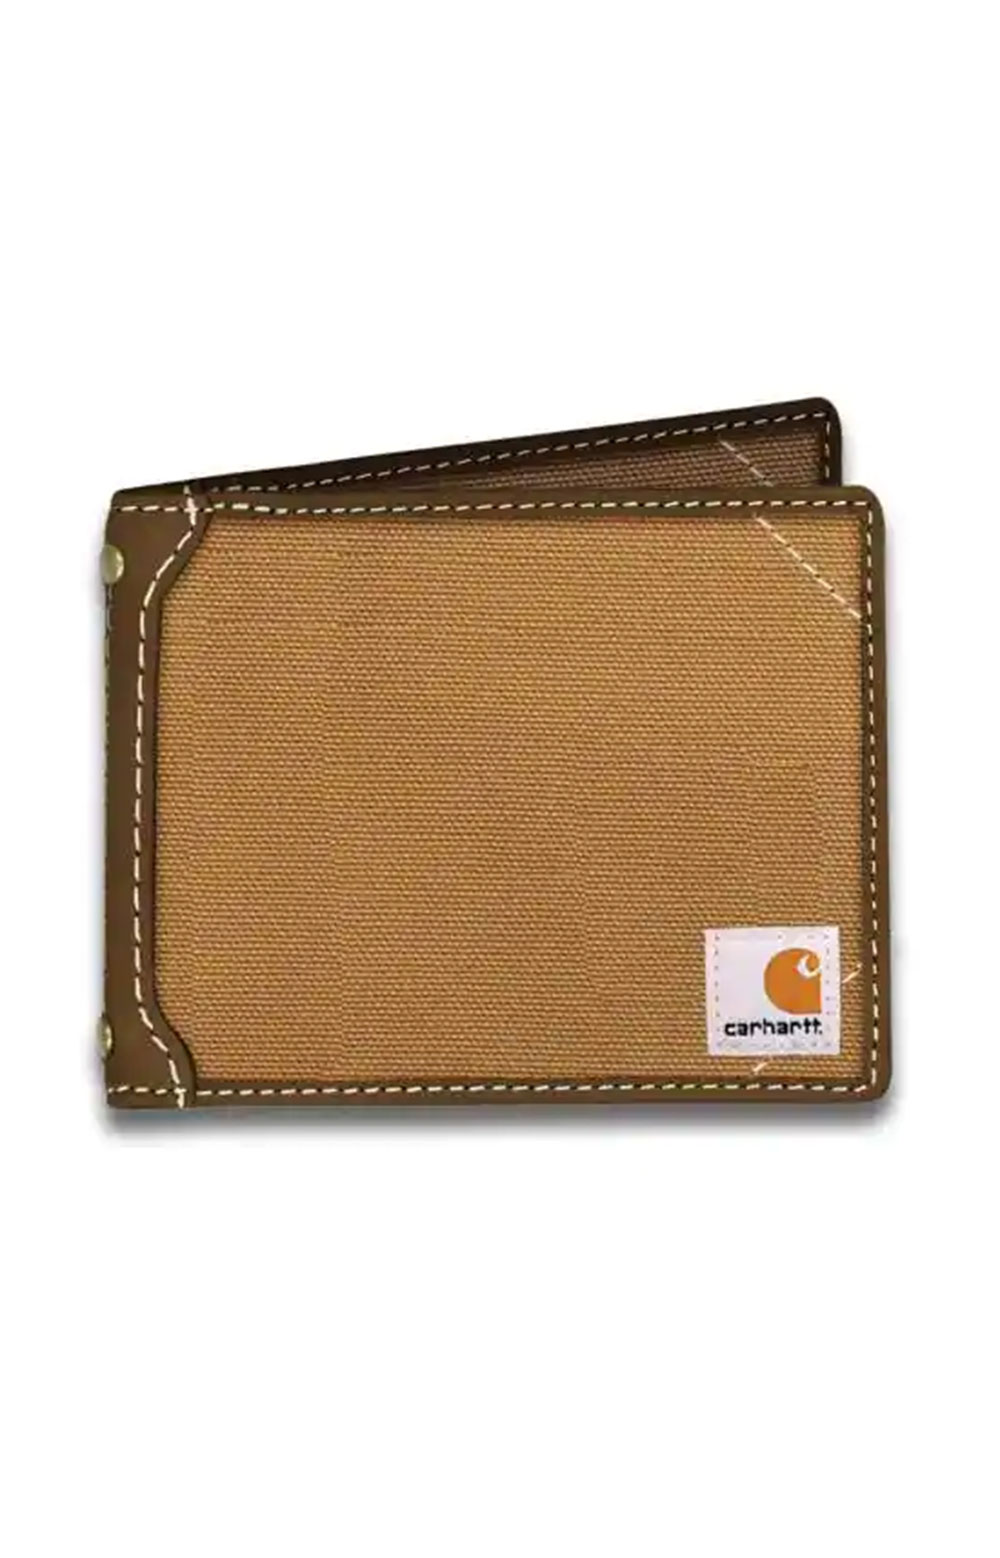 Carhartt, Canvas Passcase Wallet - Brown